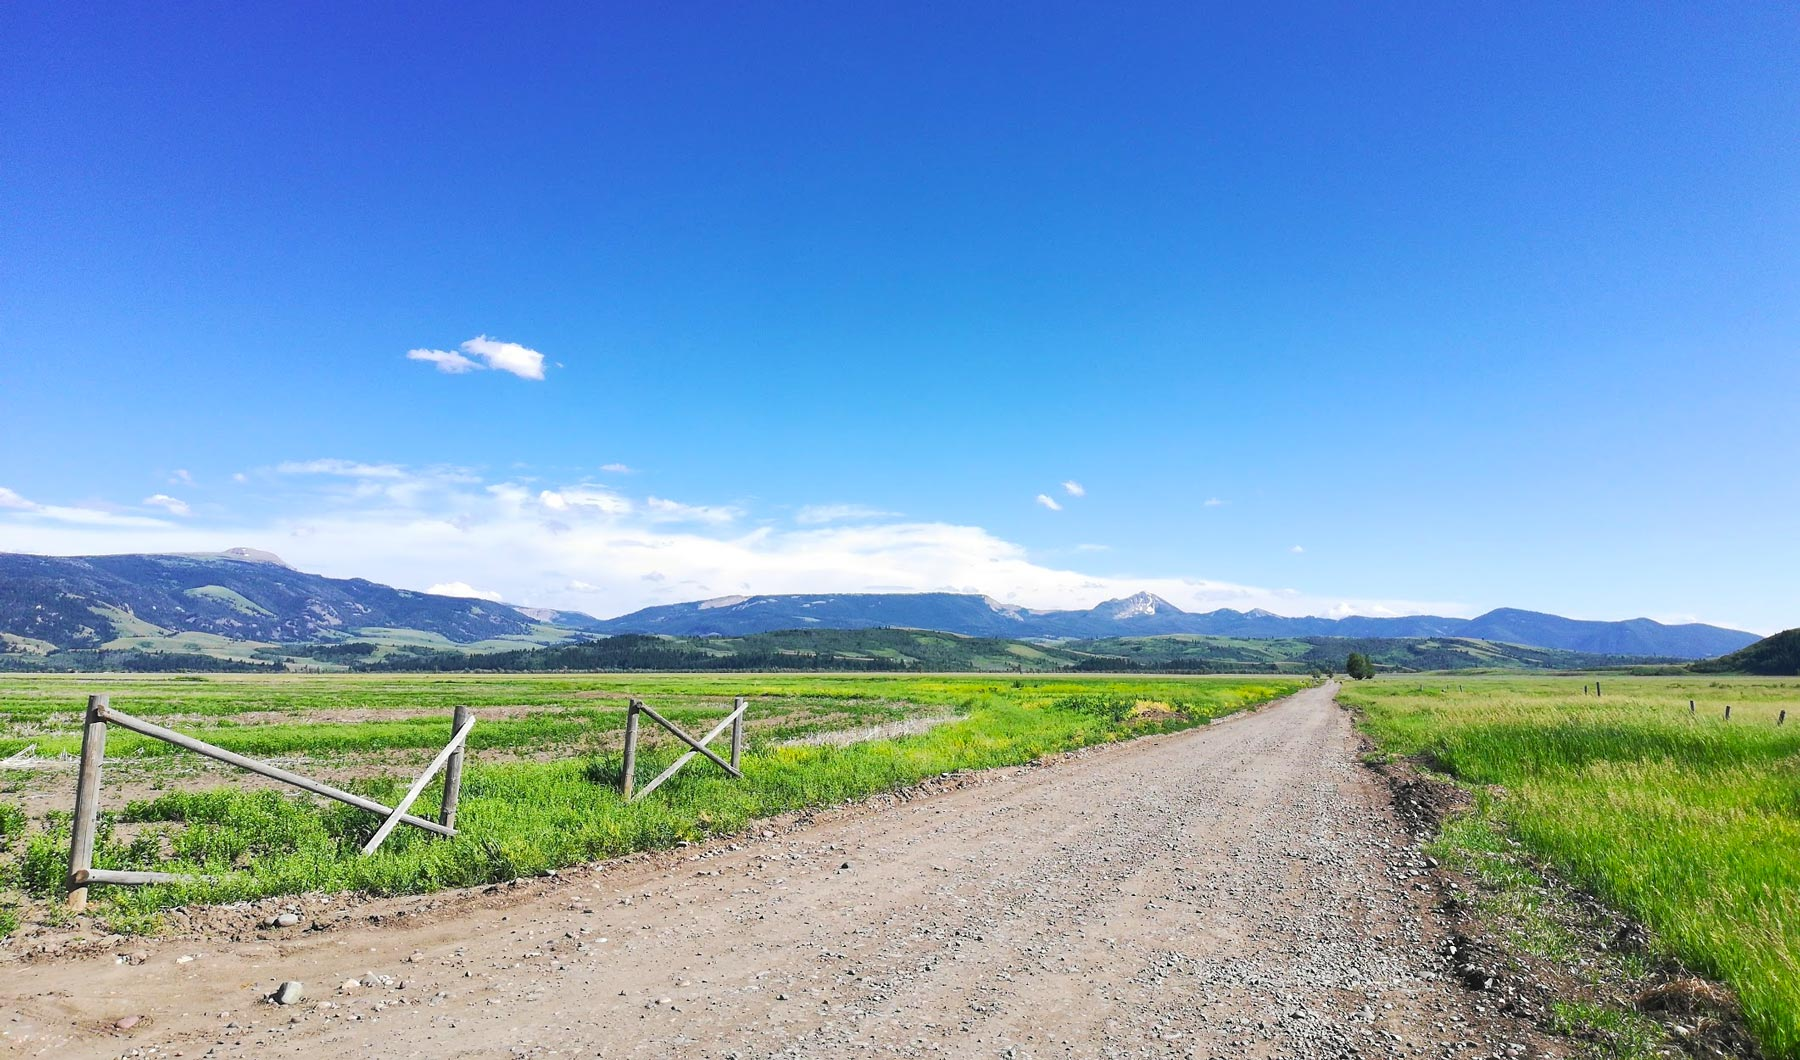 Wooden fence, gravel road, and green meadows at Grand Teton National Park, Wyoming